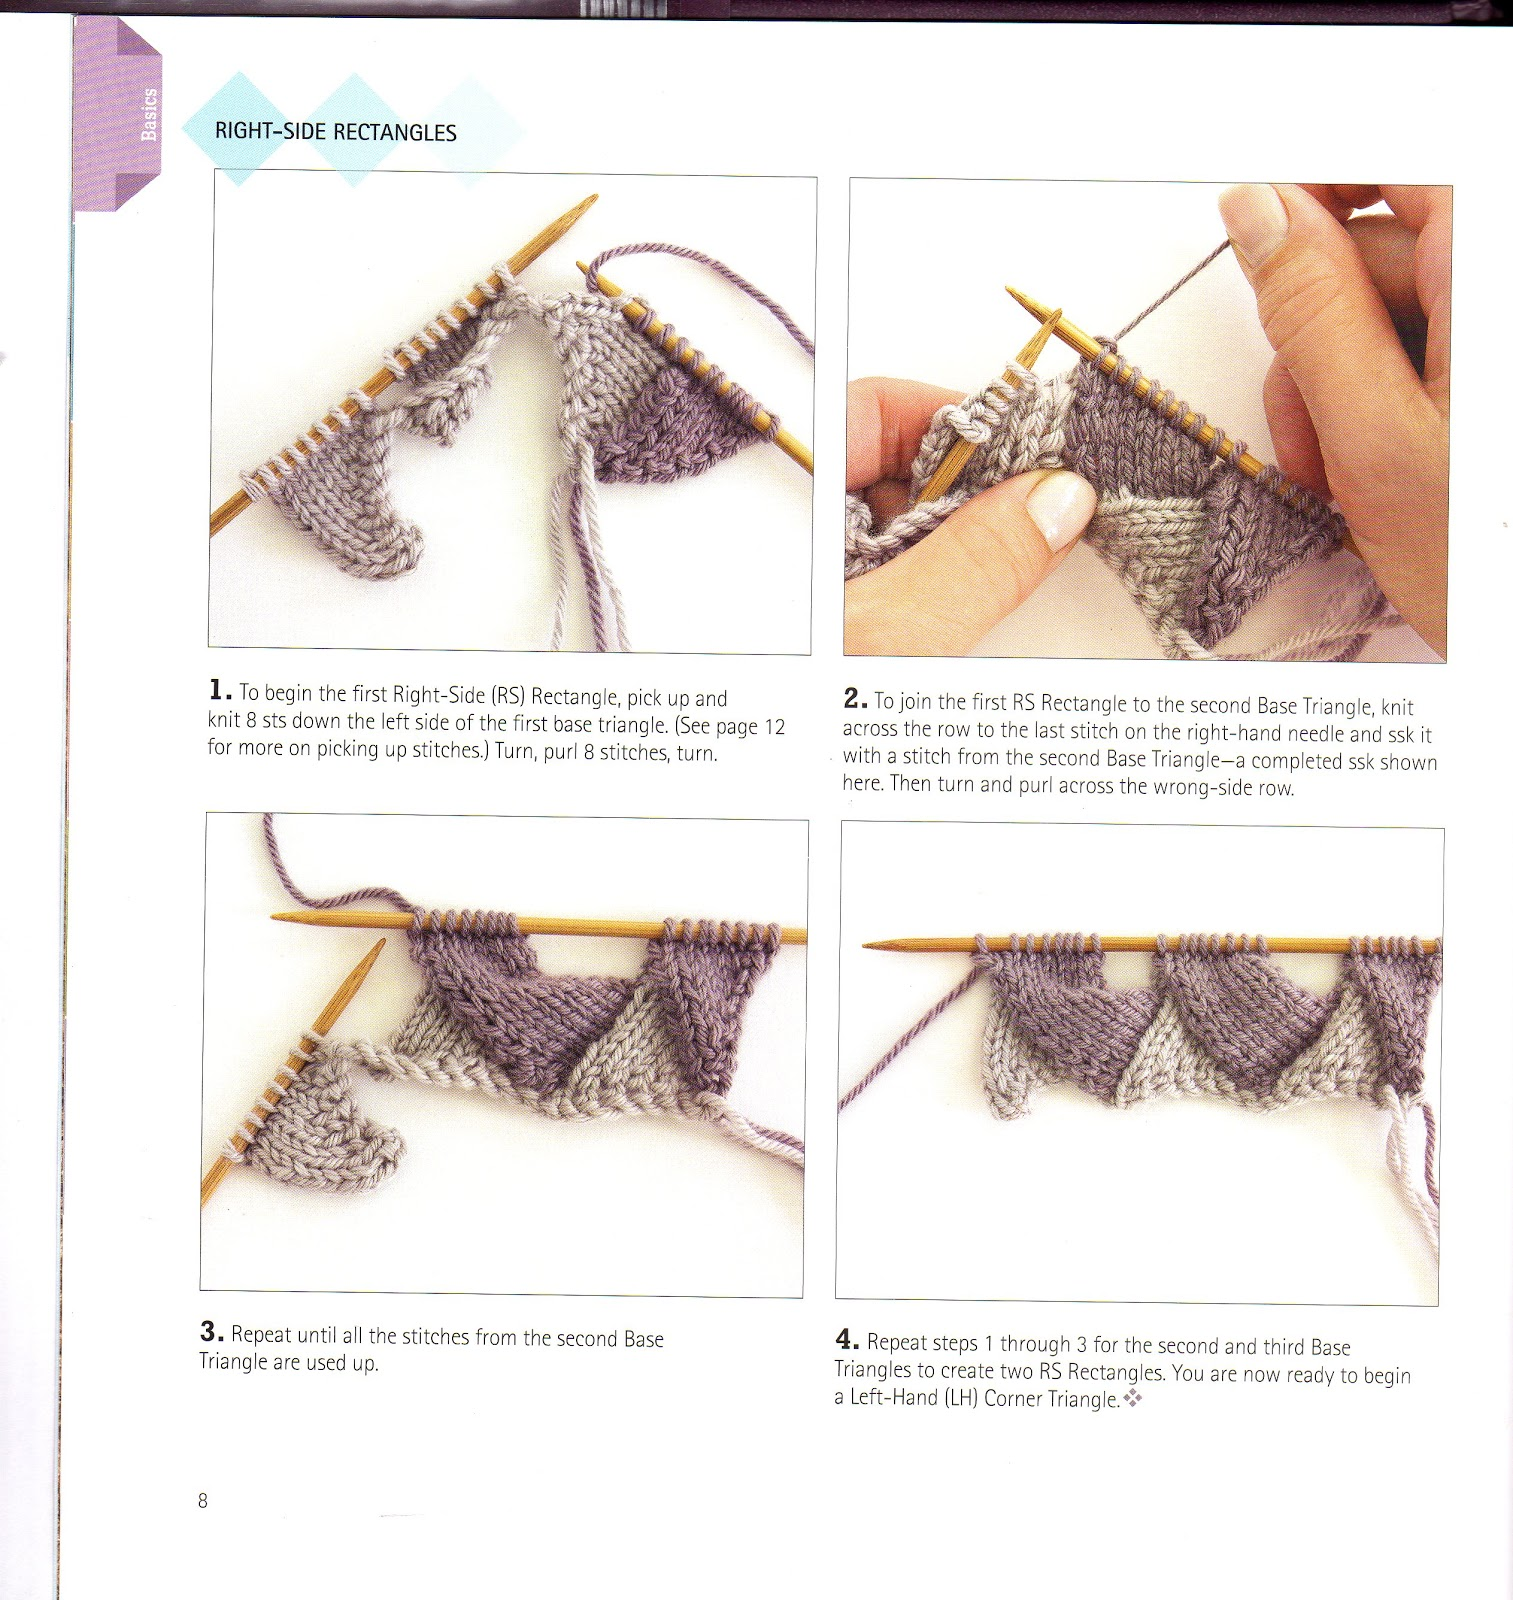 Knitting Patterns Free: What is Entrelac knitting? How to Entrelac ...